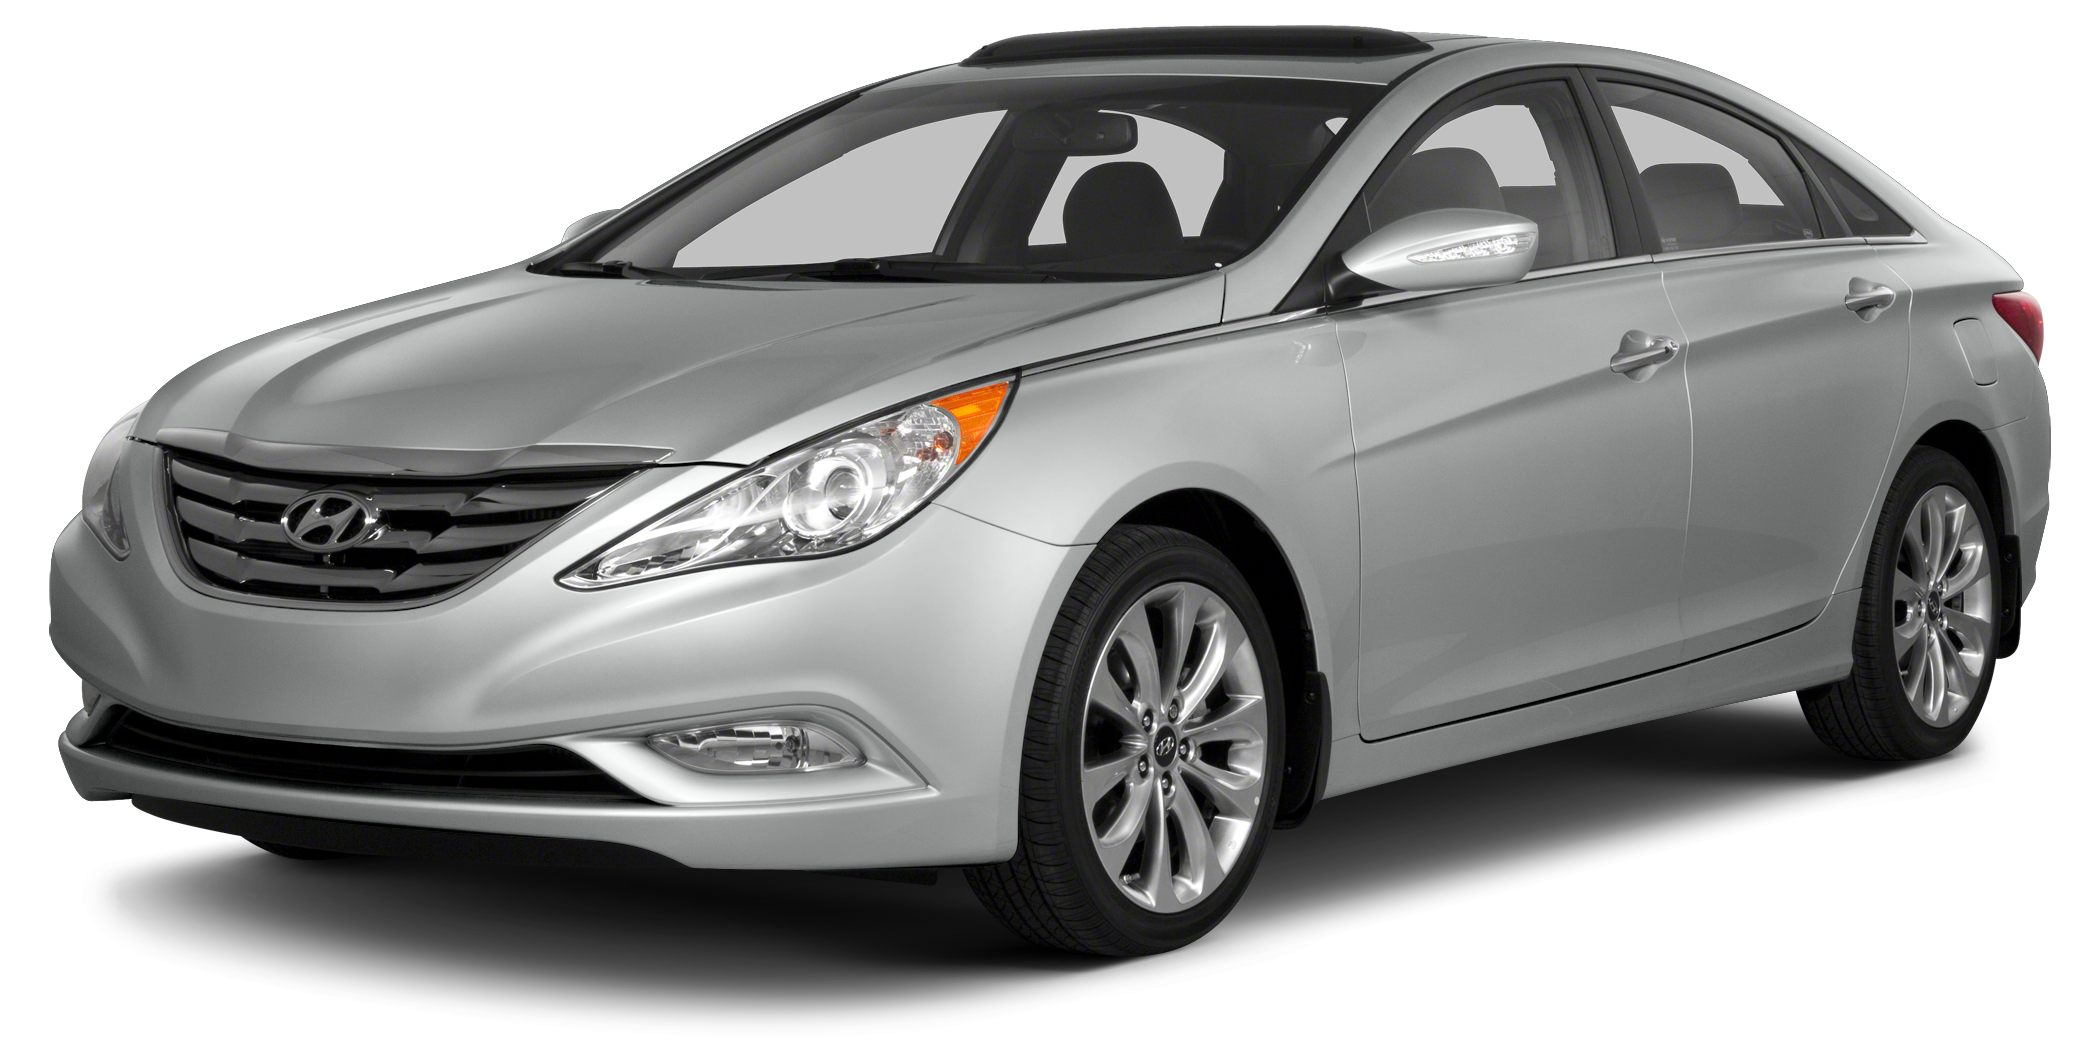 2013 Hyundai Sonata GLS Hyundai Certified ---- just 17k miles on this one owner Sonata that comes